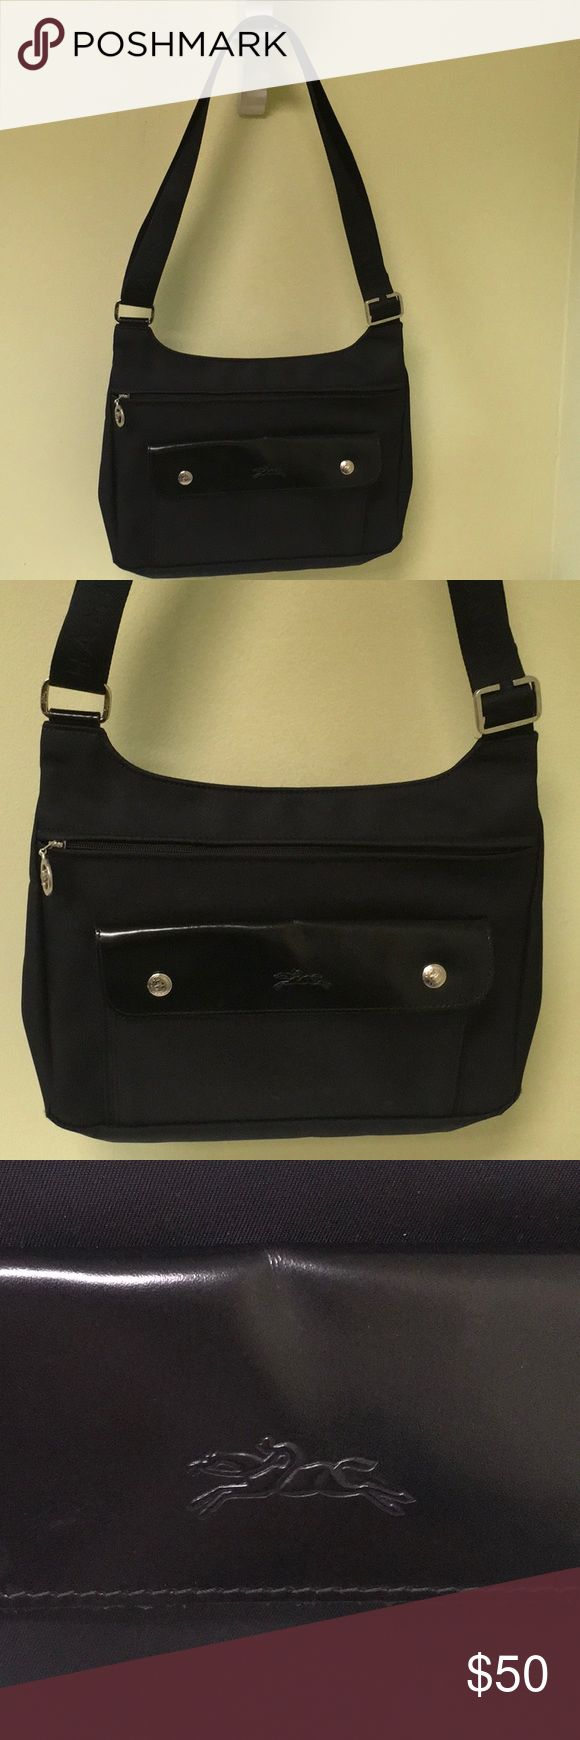 """Longchamp Planetes Black Nylon Cross Body Bag Up for sale is a preowned Longchamp Planetes Black Nylon Cross Body Bag in very good condition with no major wear and only showing minor signs of prior use.  The Nylon has a couple marks that are probably easily cleanable.  This bag is in great shape with. Lot of life to be had. It measures 12"""" W x 9"""" H x 2 1/2"""" W. the strap is adjustable for shoulder wear or cross body wear. Authentic guaranteed Longchamp Bags Crossbody Bags"""